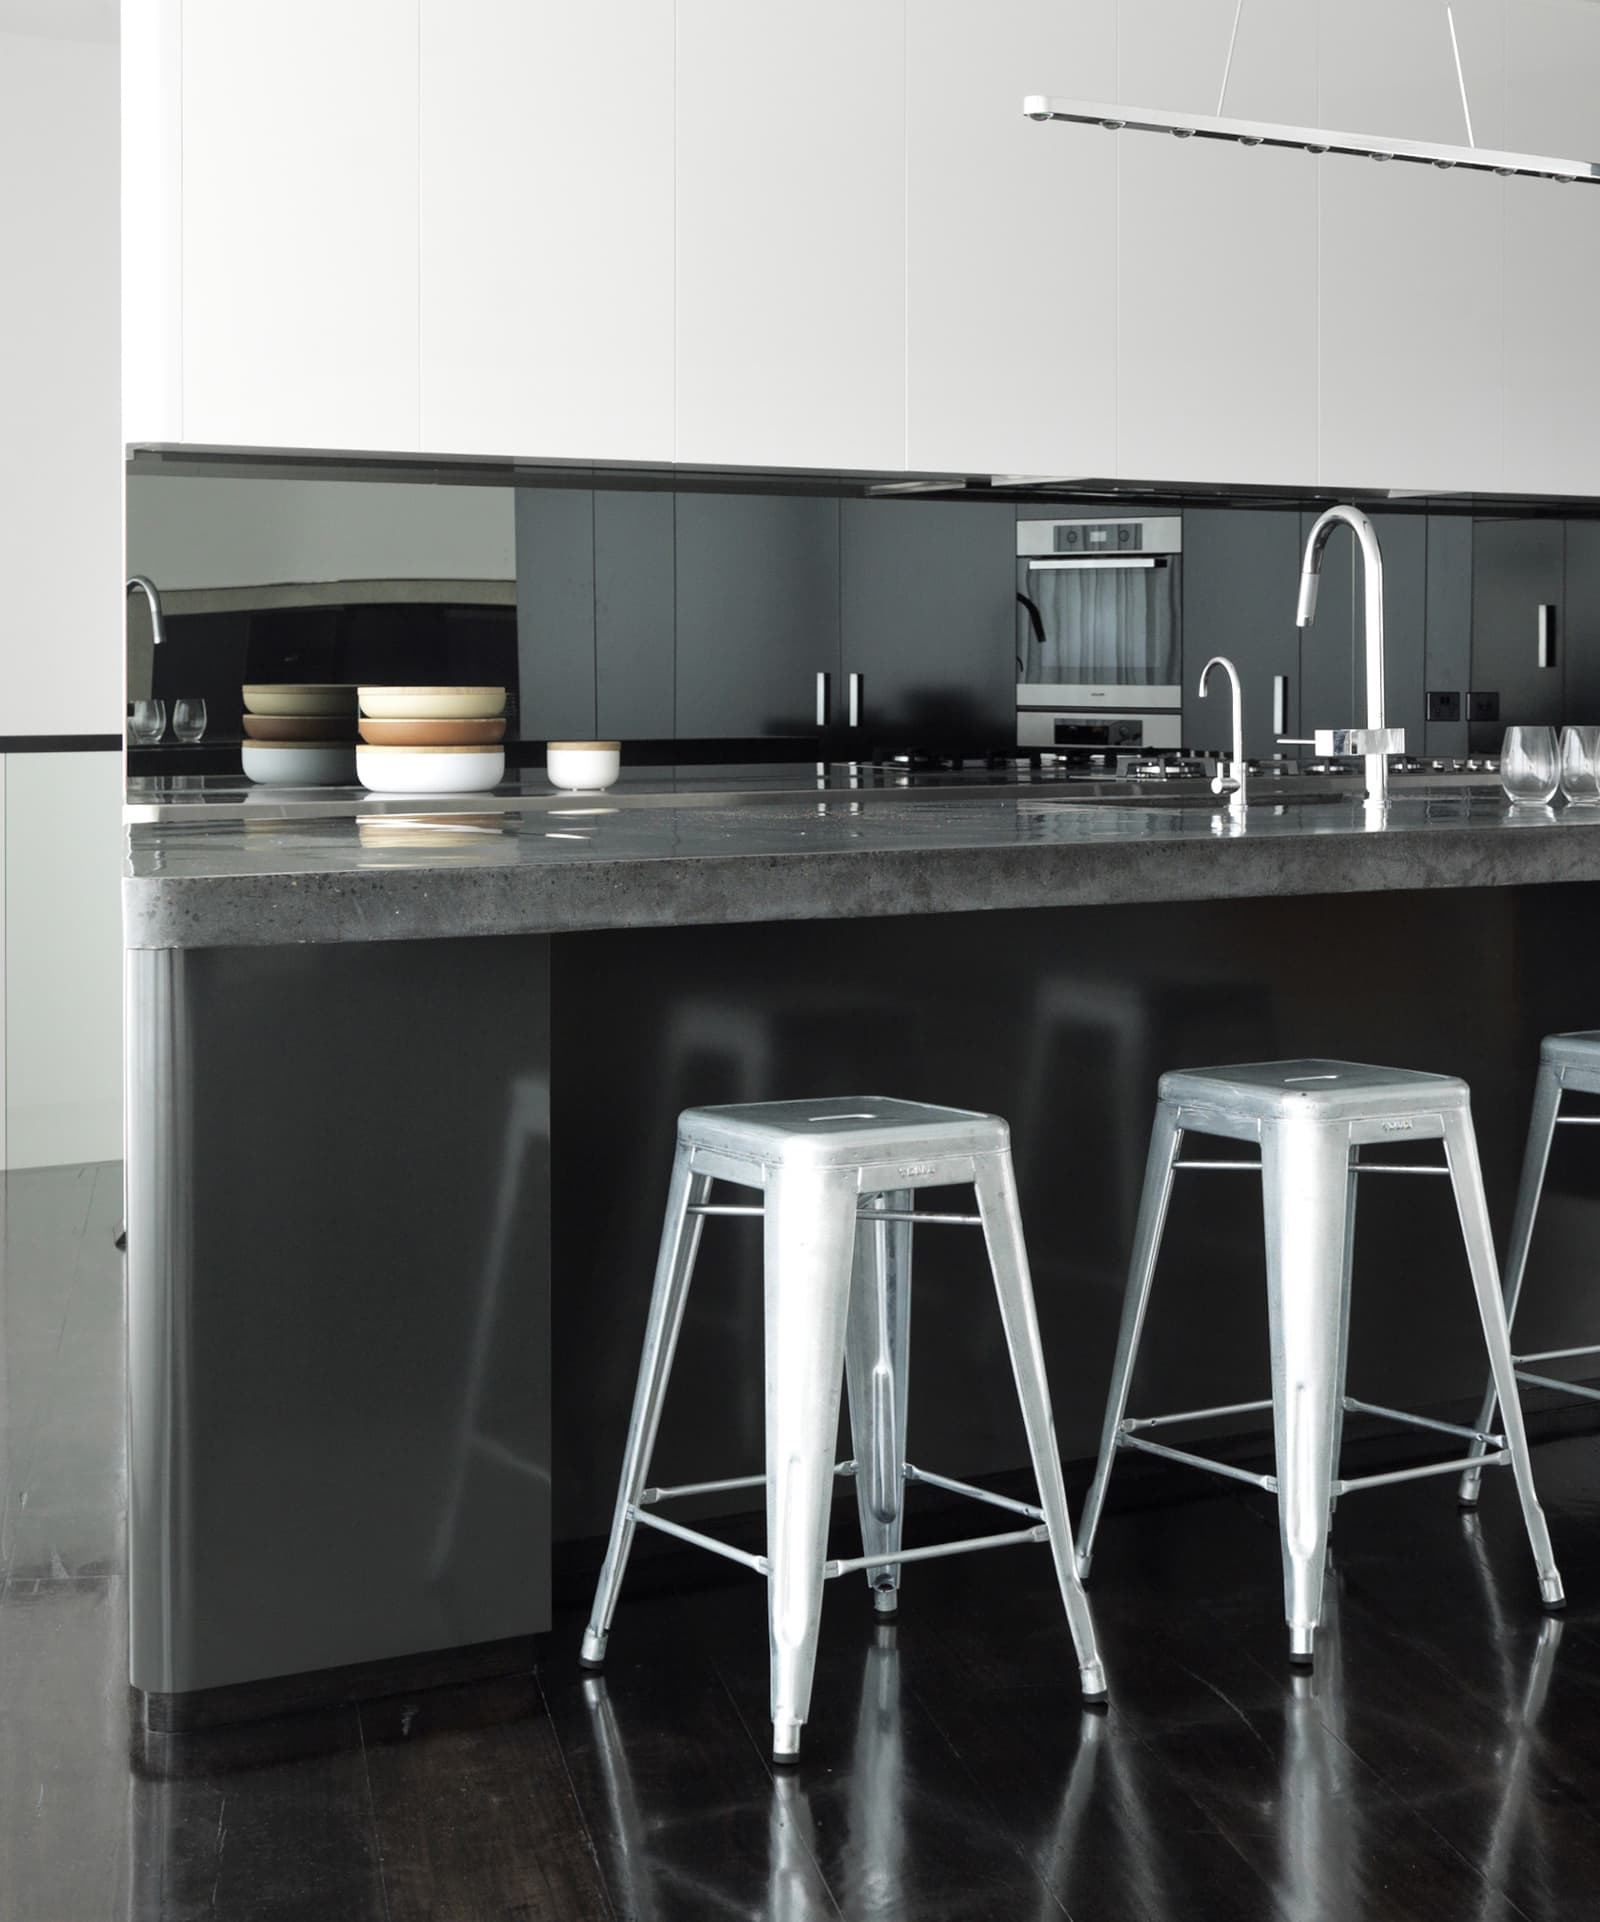 Picture of: Luigi Rosselli Architects Solid Polished Concrete Benchtop With Black Oxides Luigi Rosselli Architects